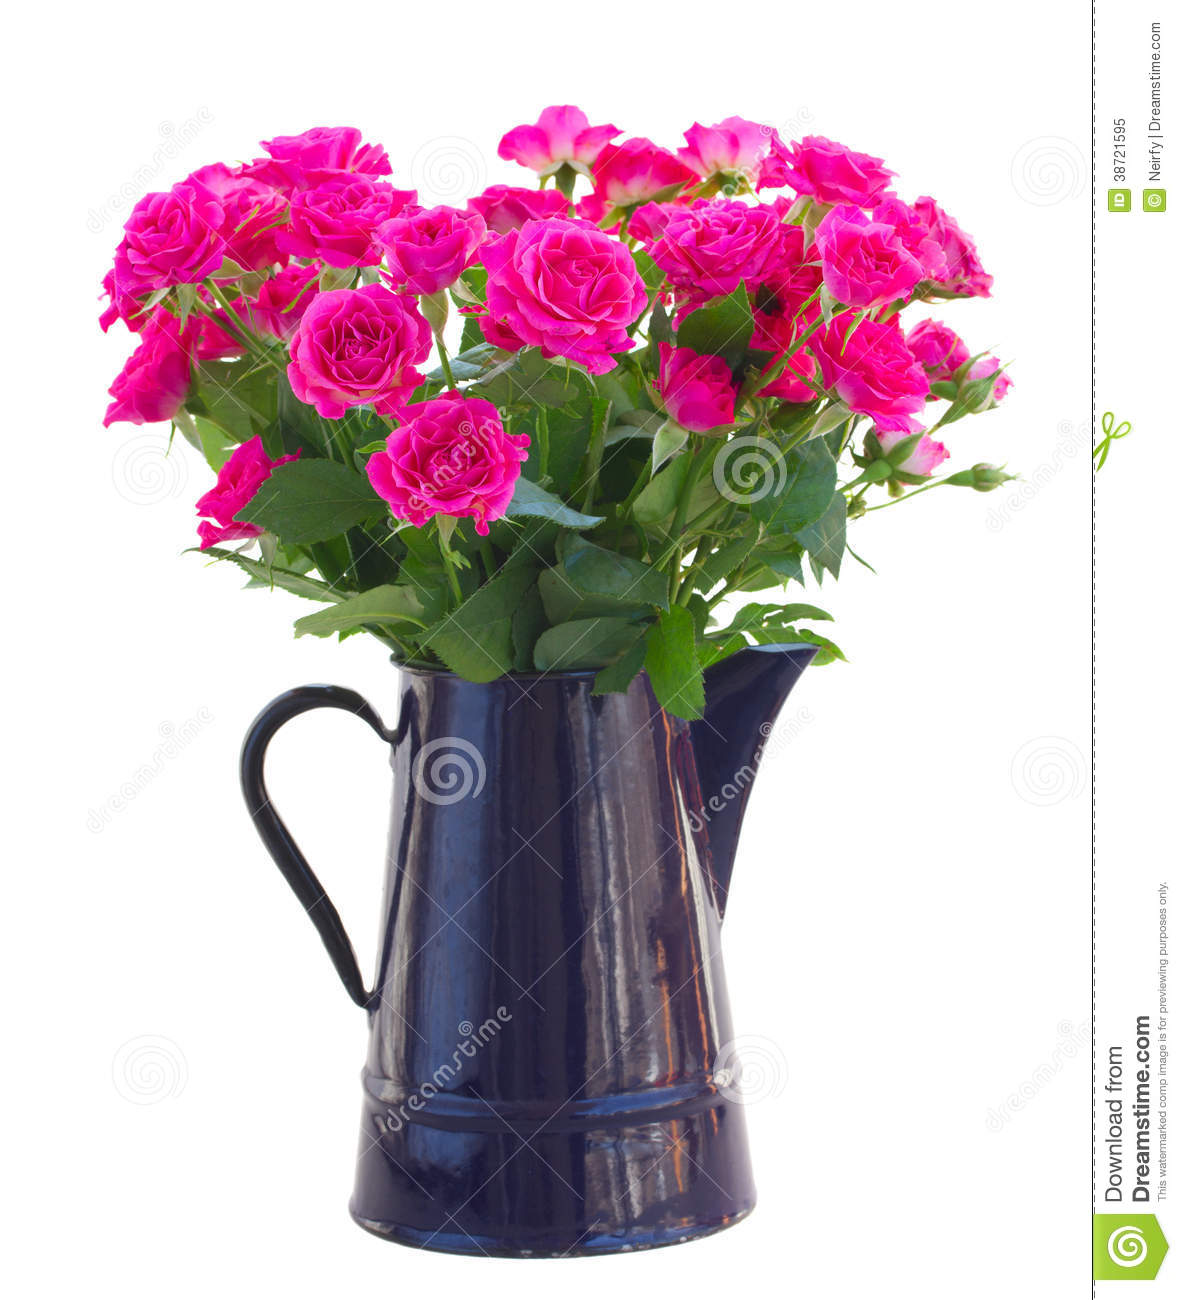 Bouquet of blossoming pink roses in vase